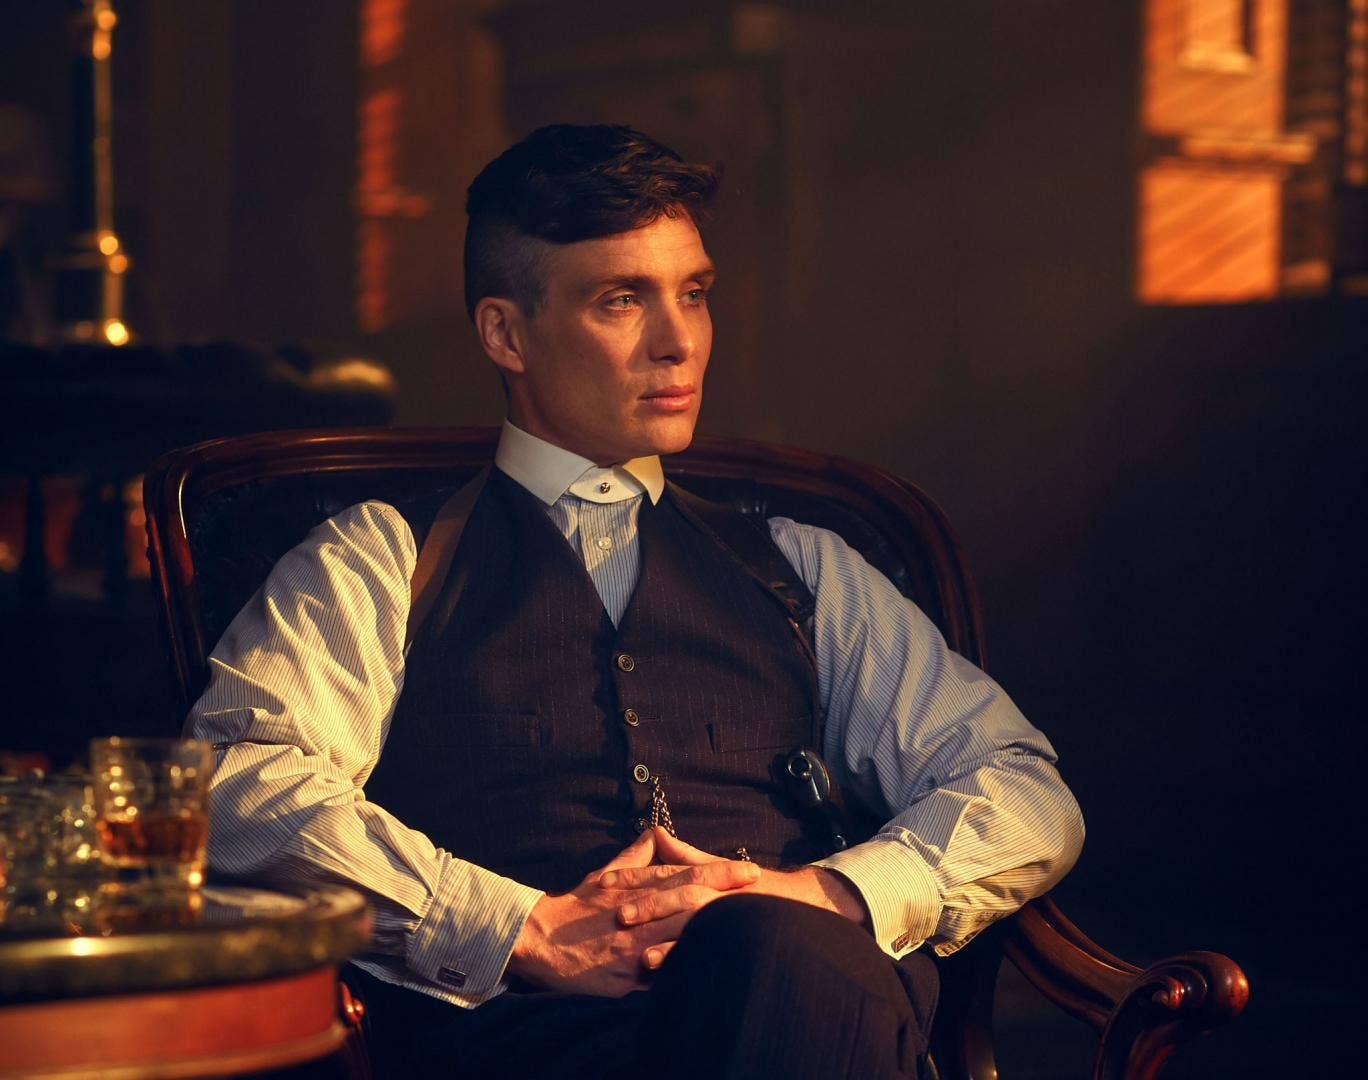 Cillian Murphy stars as Tommy Shelby in Peaky Blinders